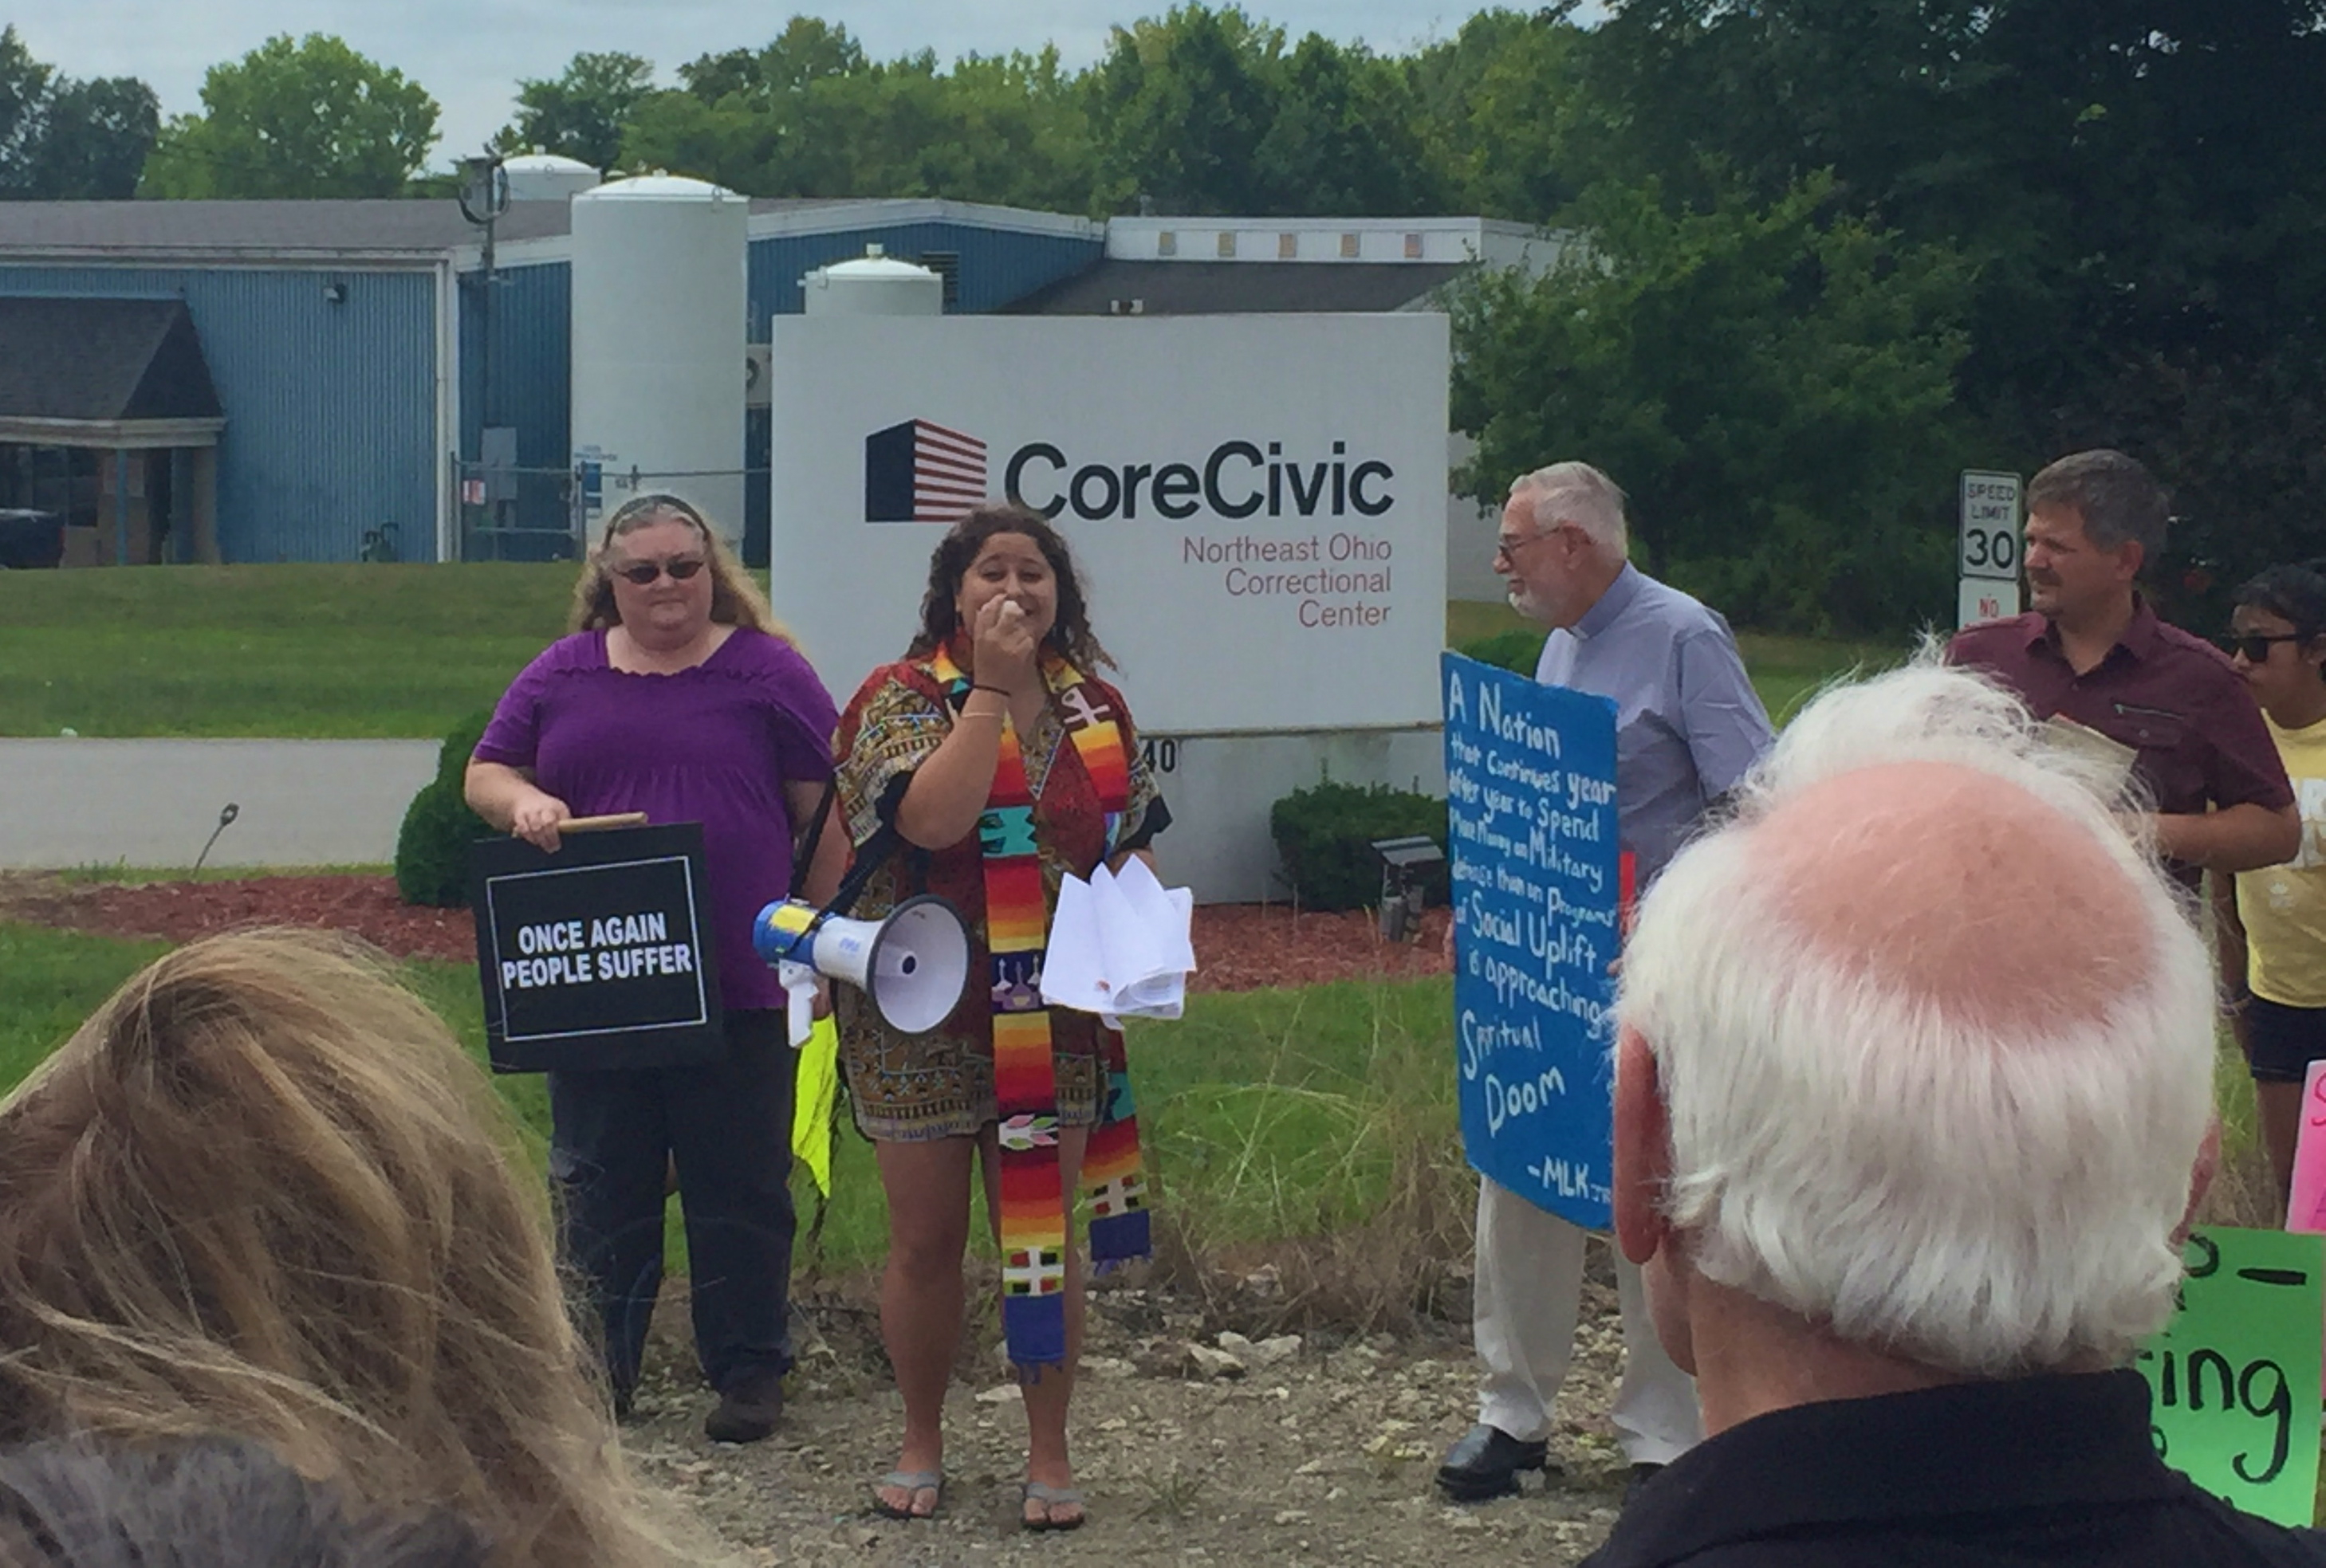 UPDATE | Protest leads to arrests at CoreCivic